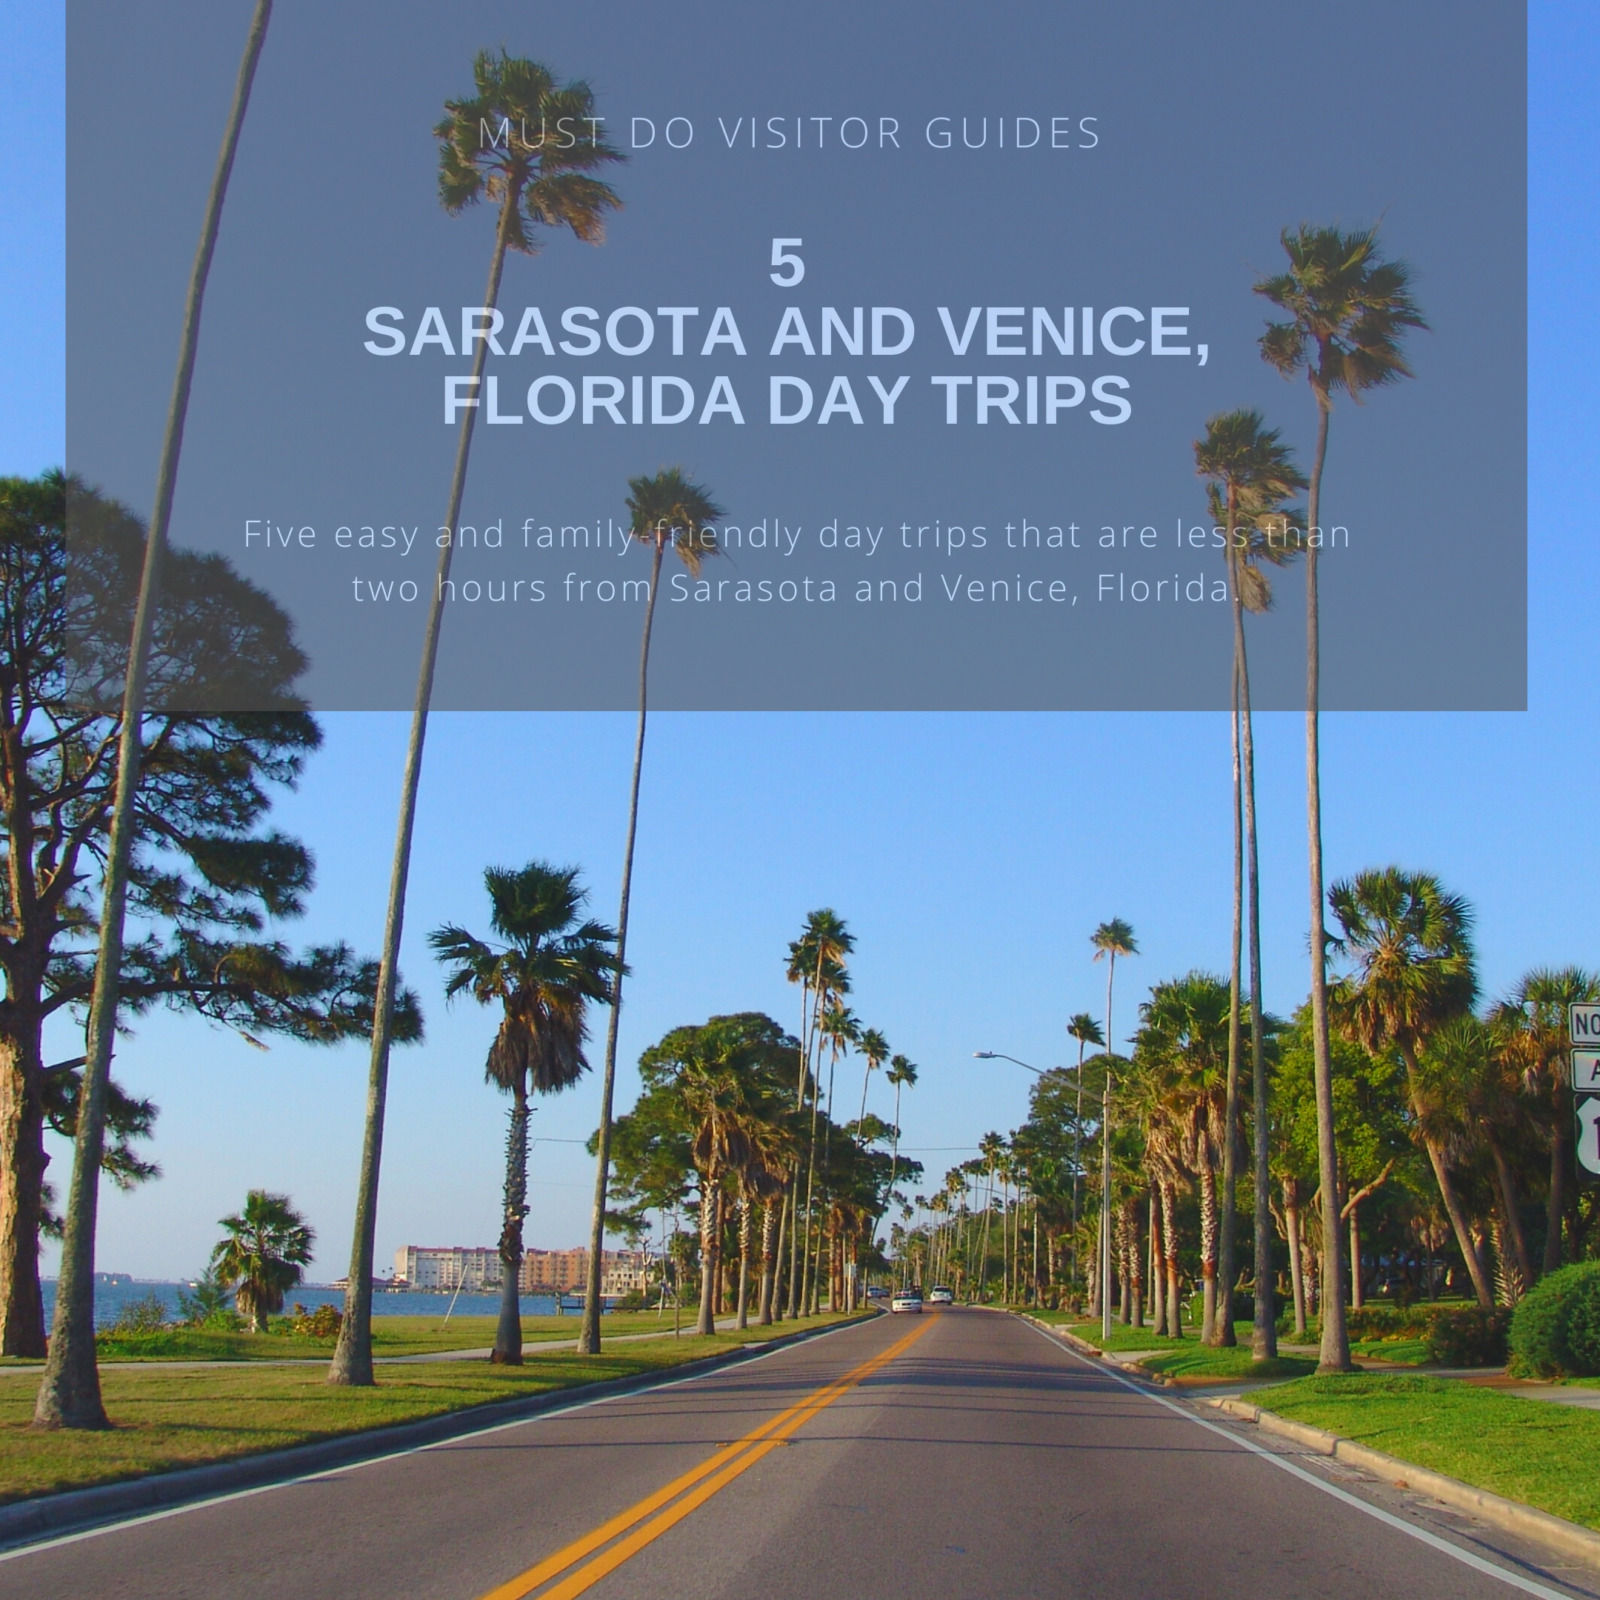 Five easy and family-friendly day trips that are less than two hours from Sarasota and Venice, Florida. Must Do Visitor Guides | MustDo.com